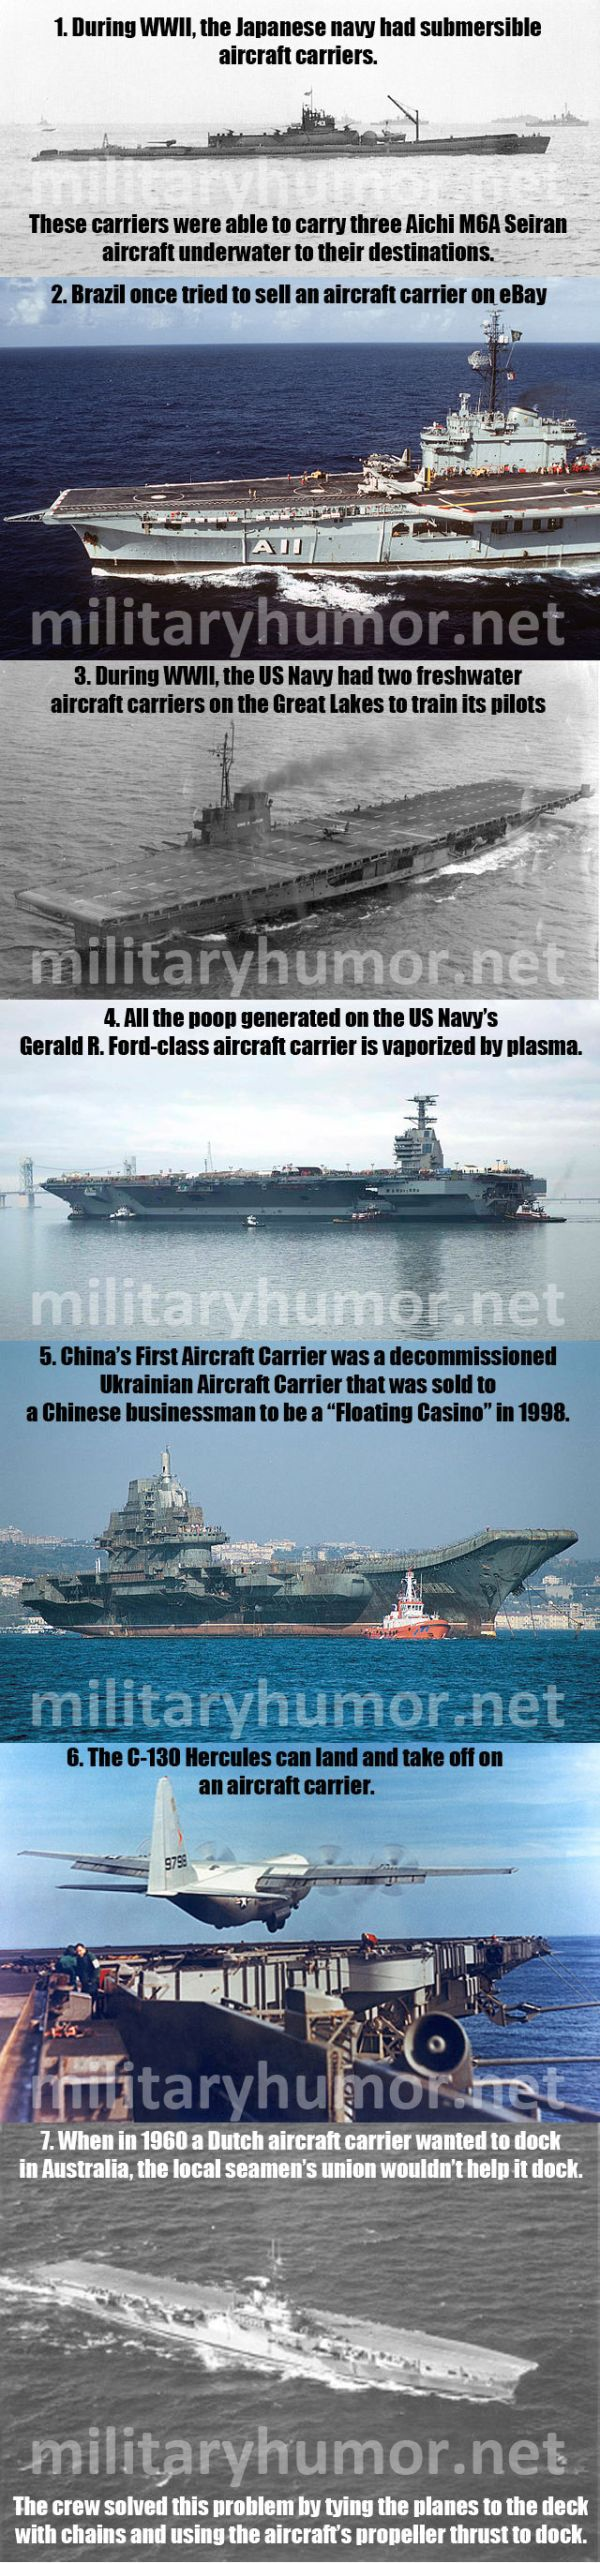 Amazing Facts About Aircraft Carriers - Military humor